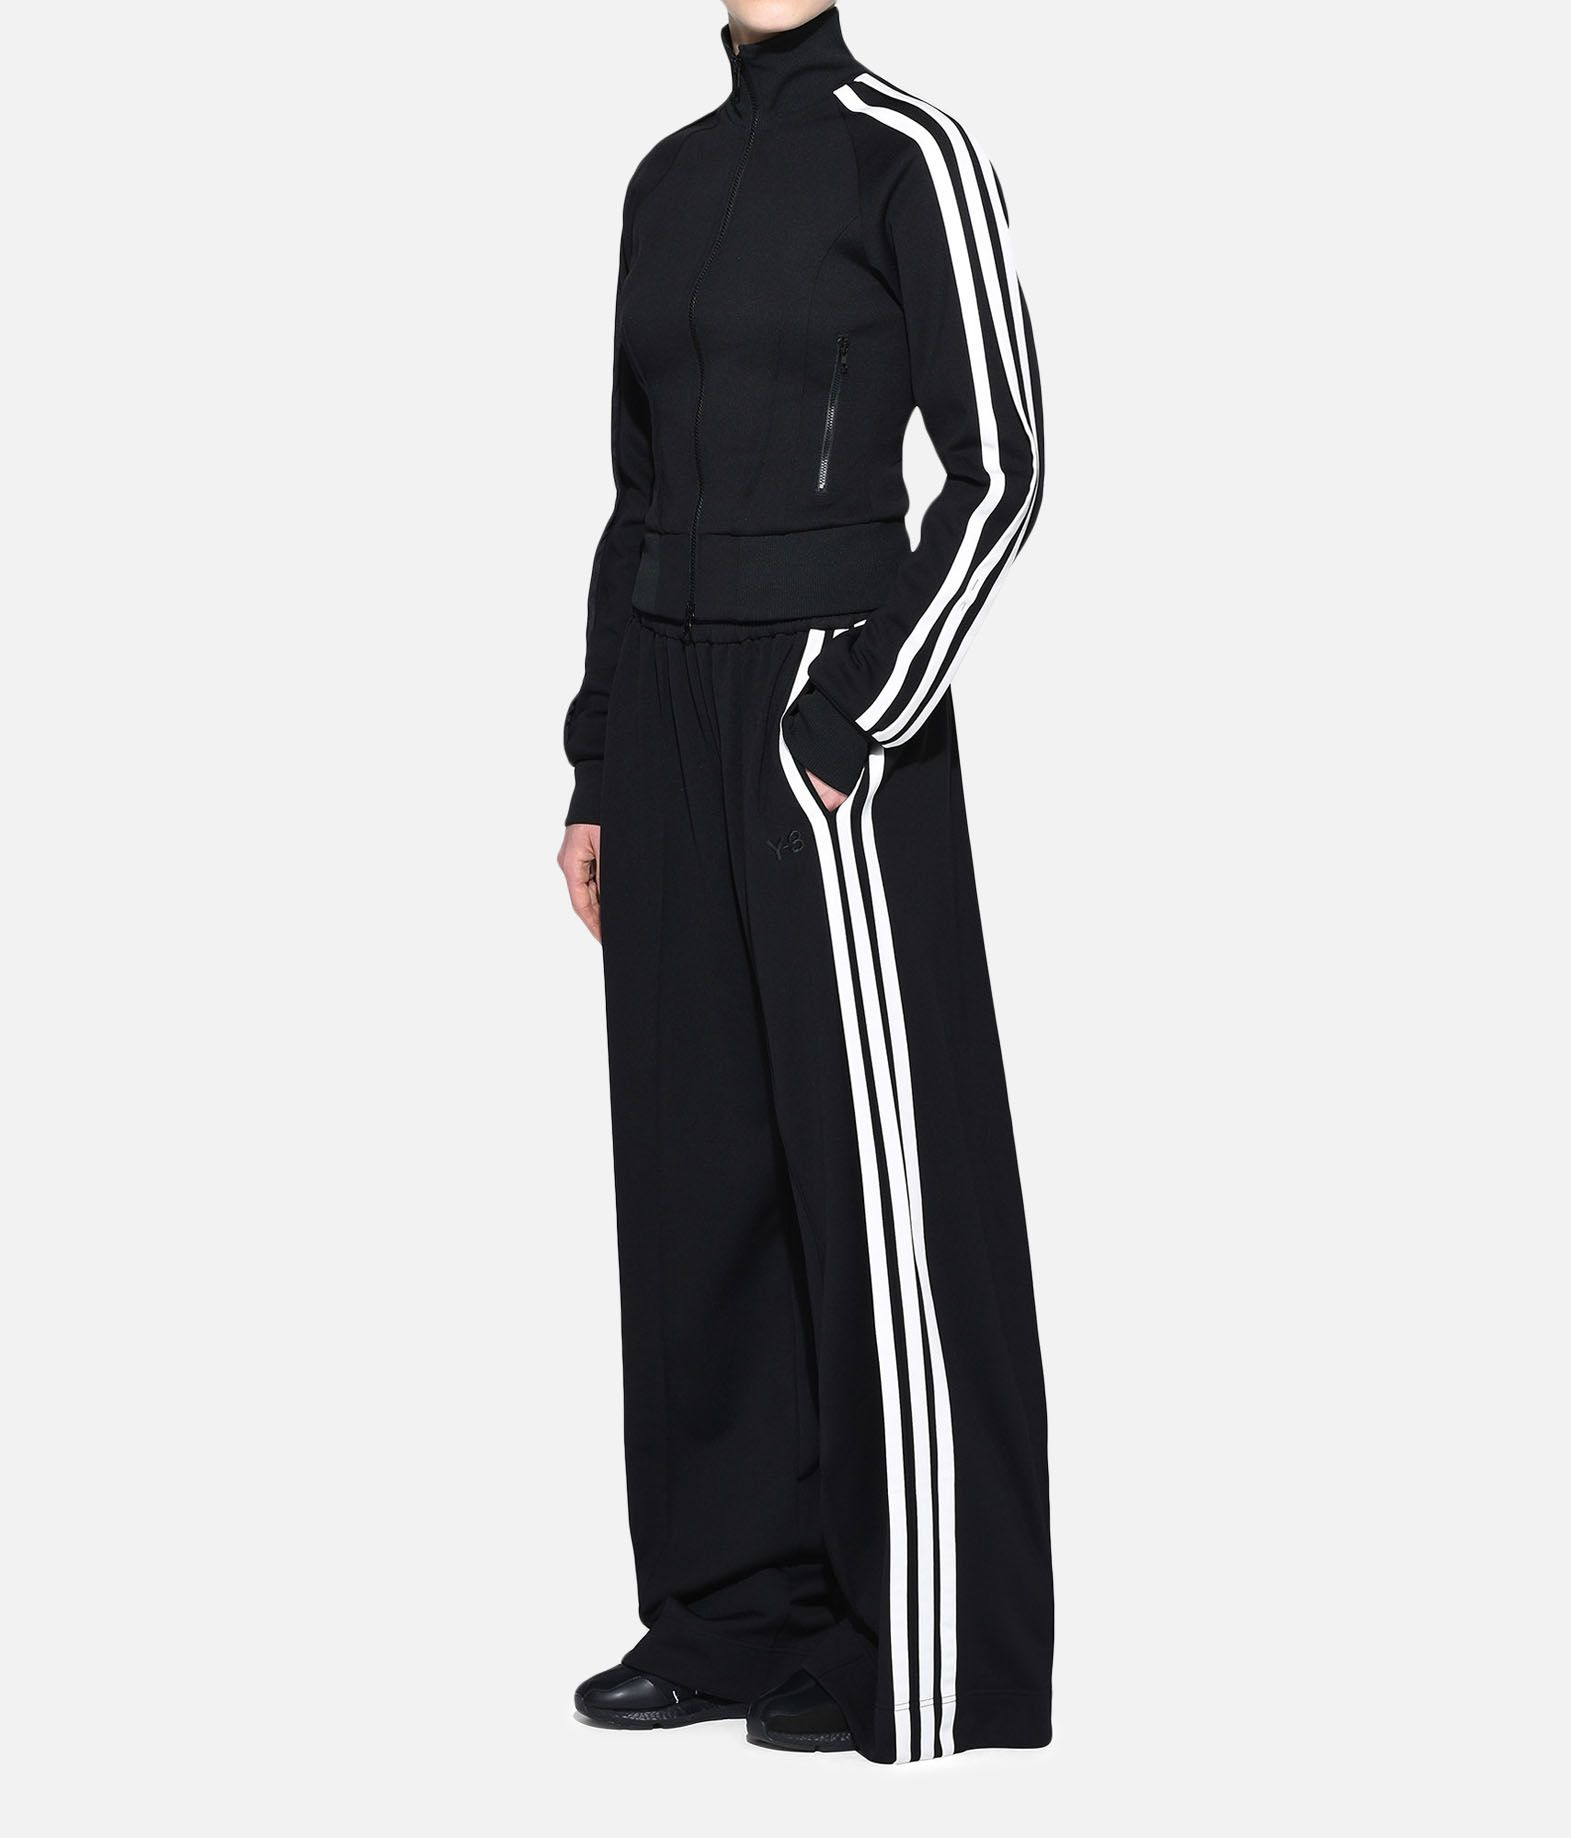 Y-3 Y-3 3-Stripes Selvedge Matte Track Pants Track pant Woman a